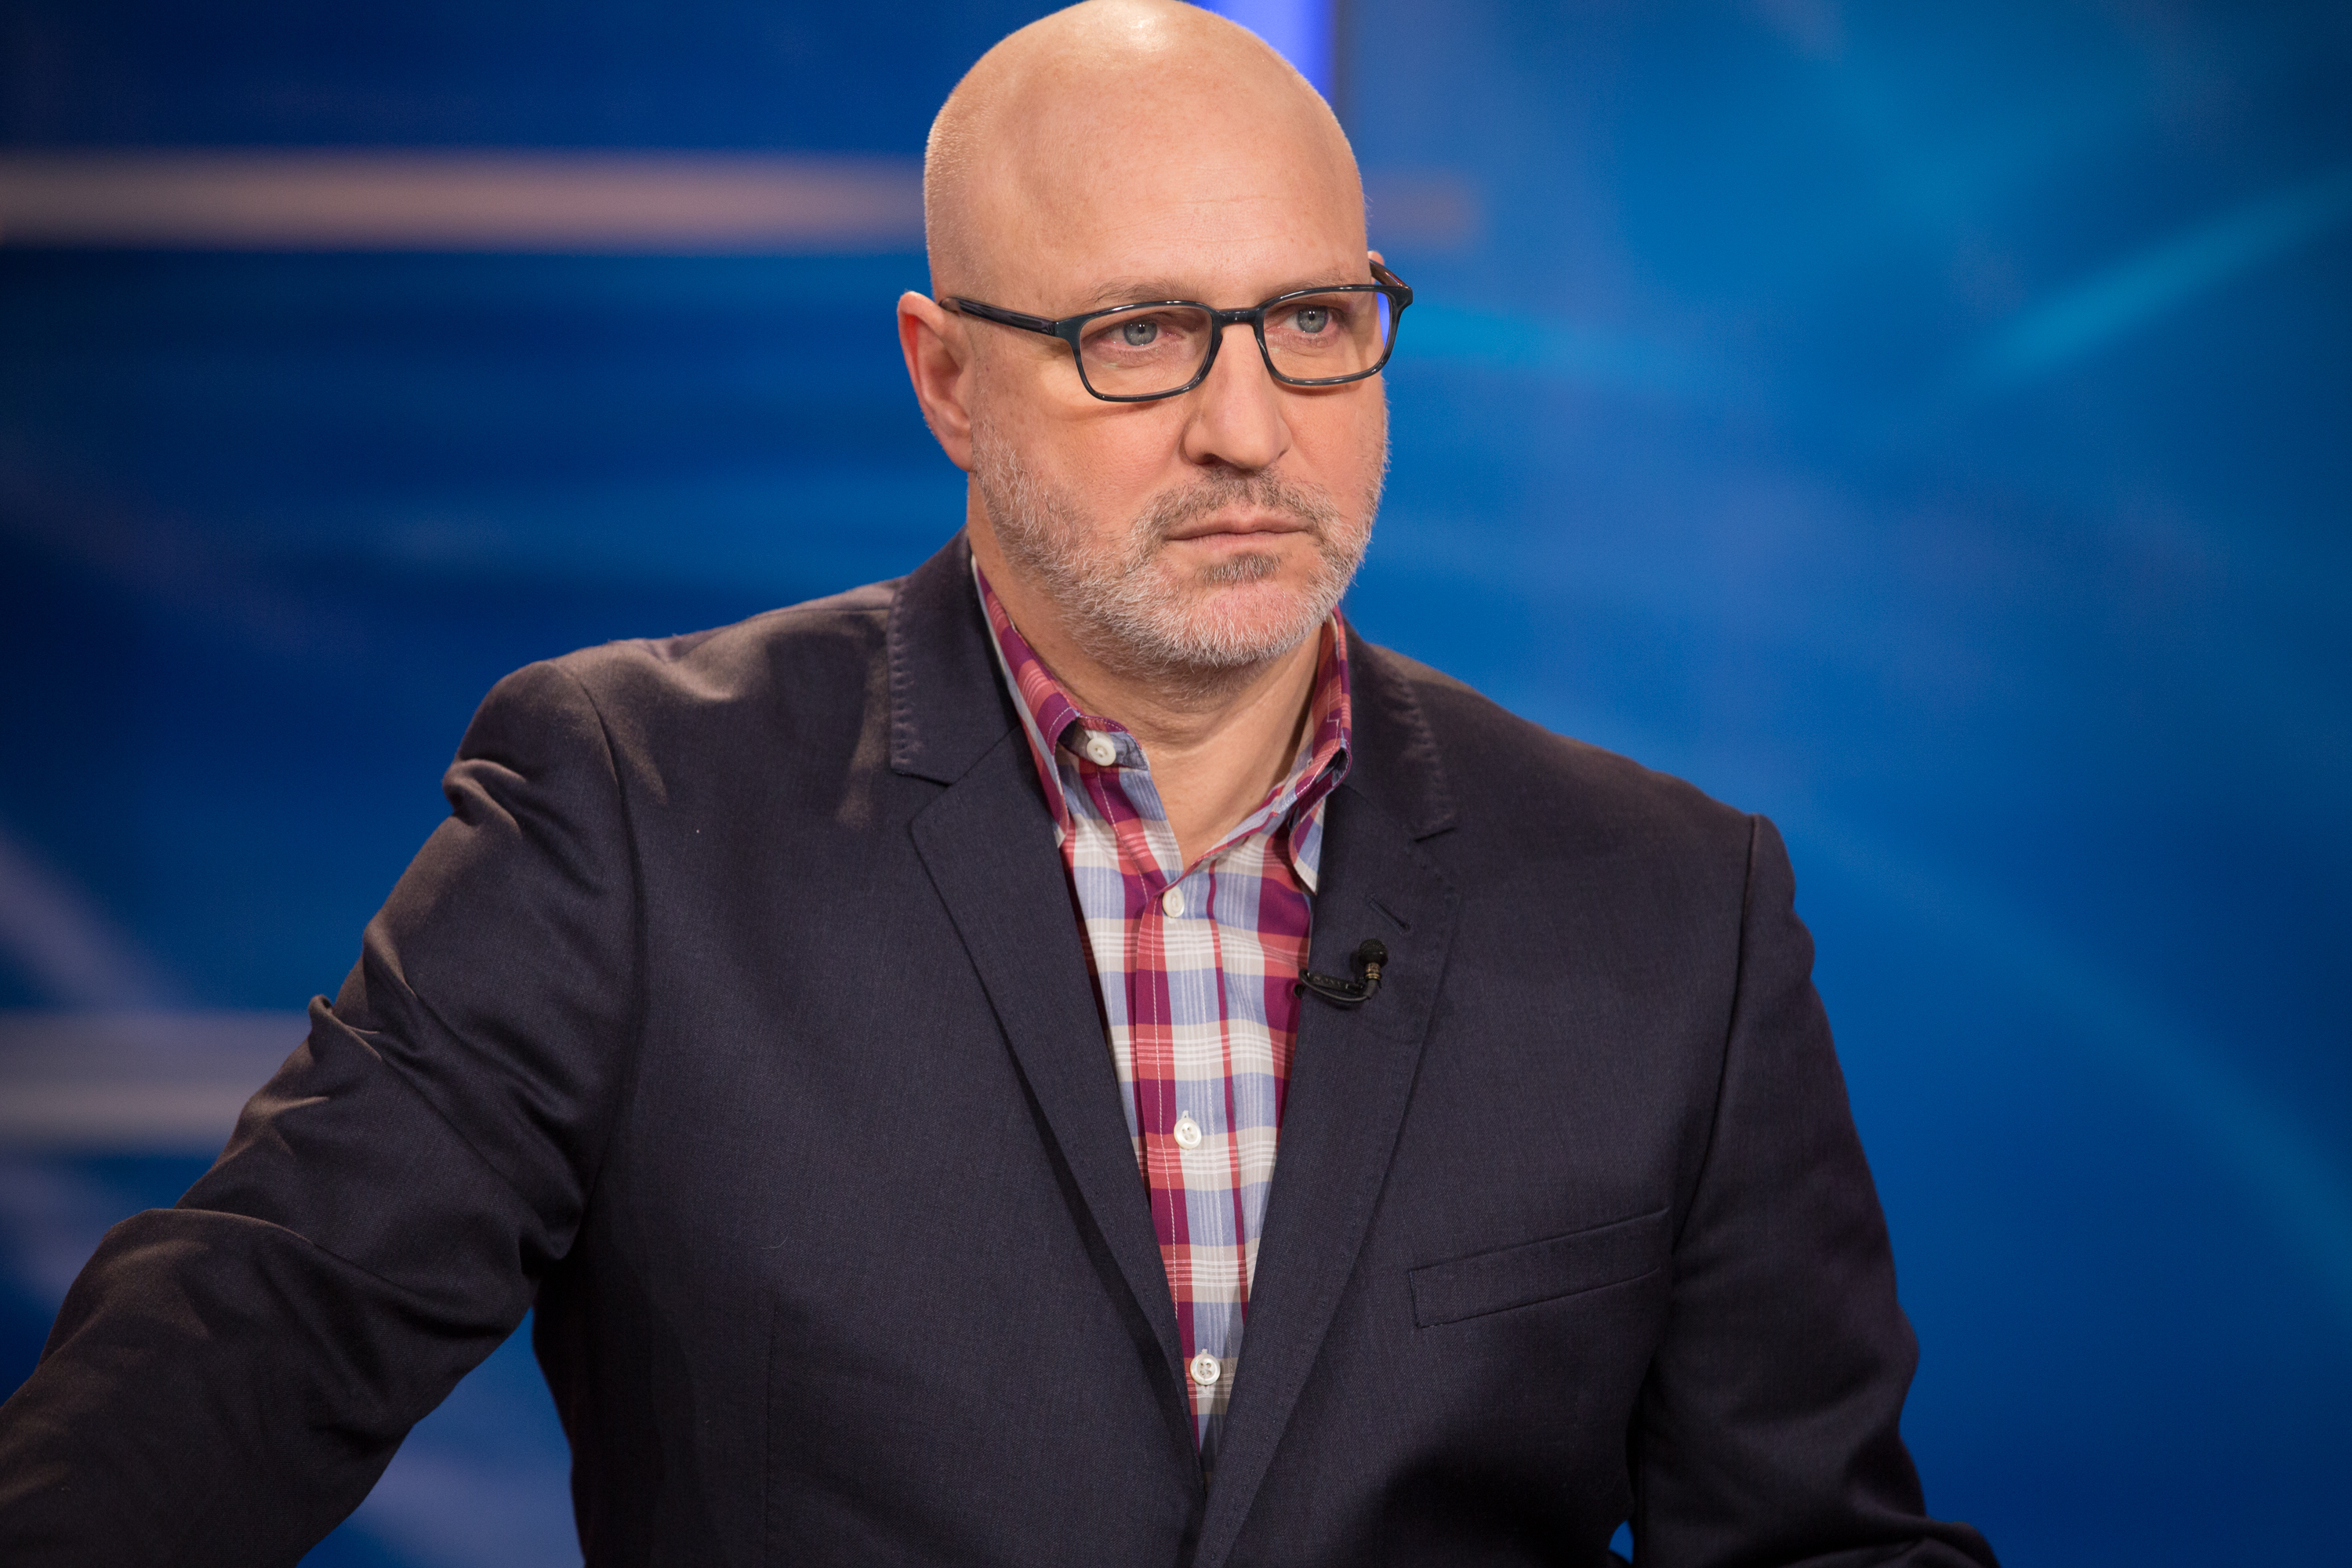 Tom Colicchio standing with glasses on.